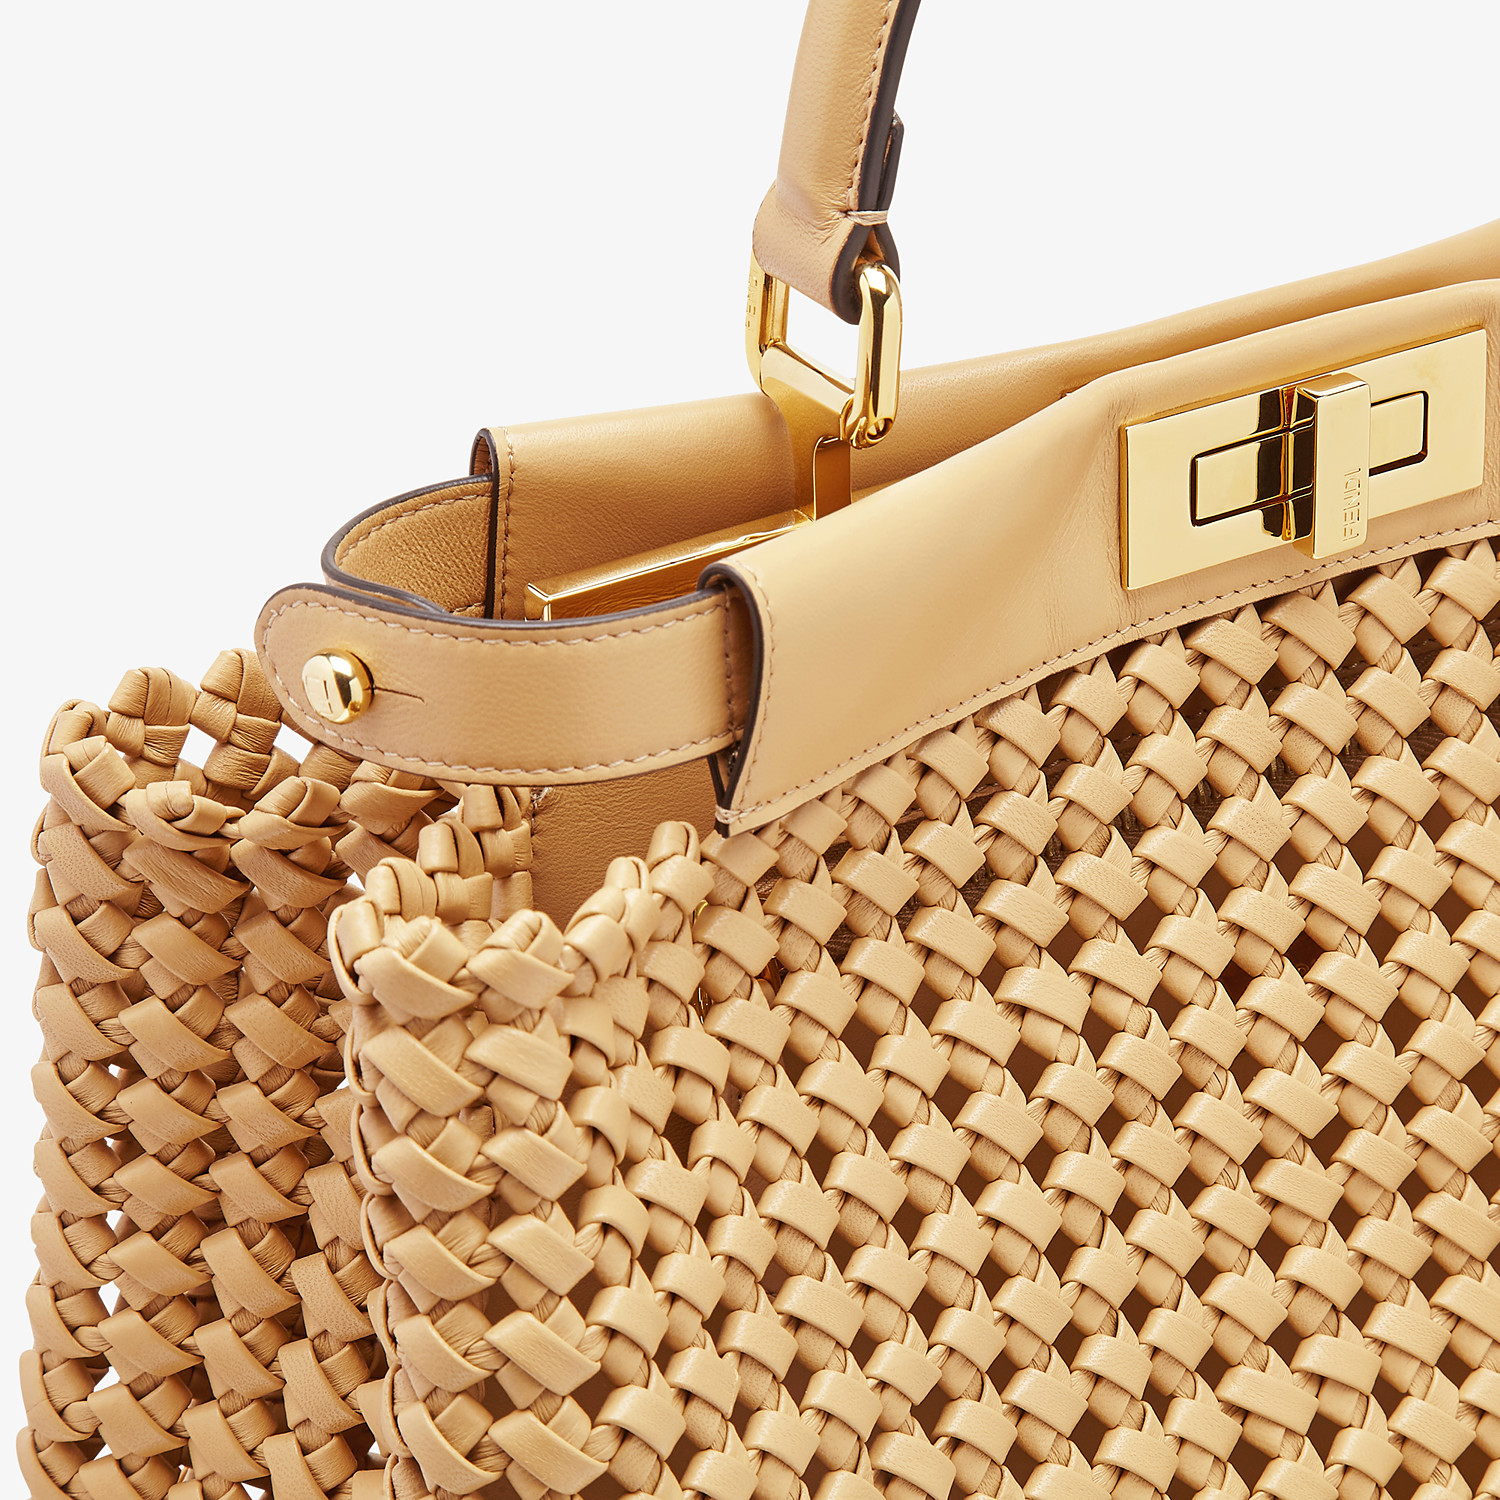 FENDI PEEKABOO ICONIC MEDIUM - Beige leather interlace bag - view 6 detail